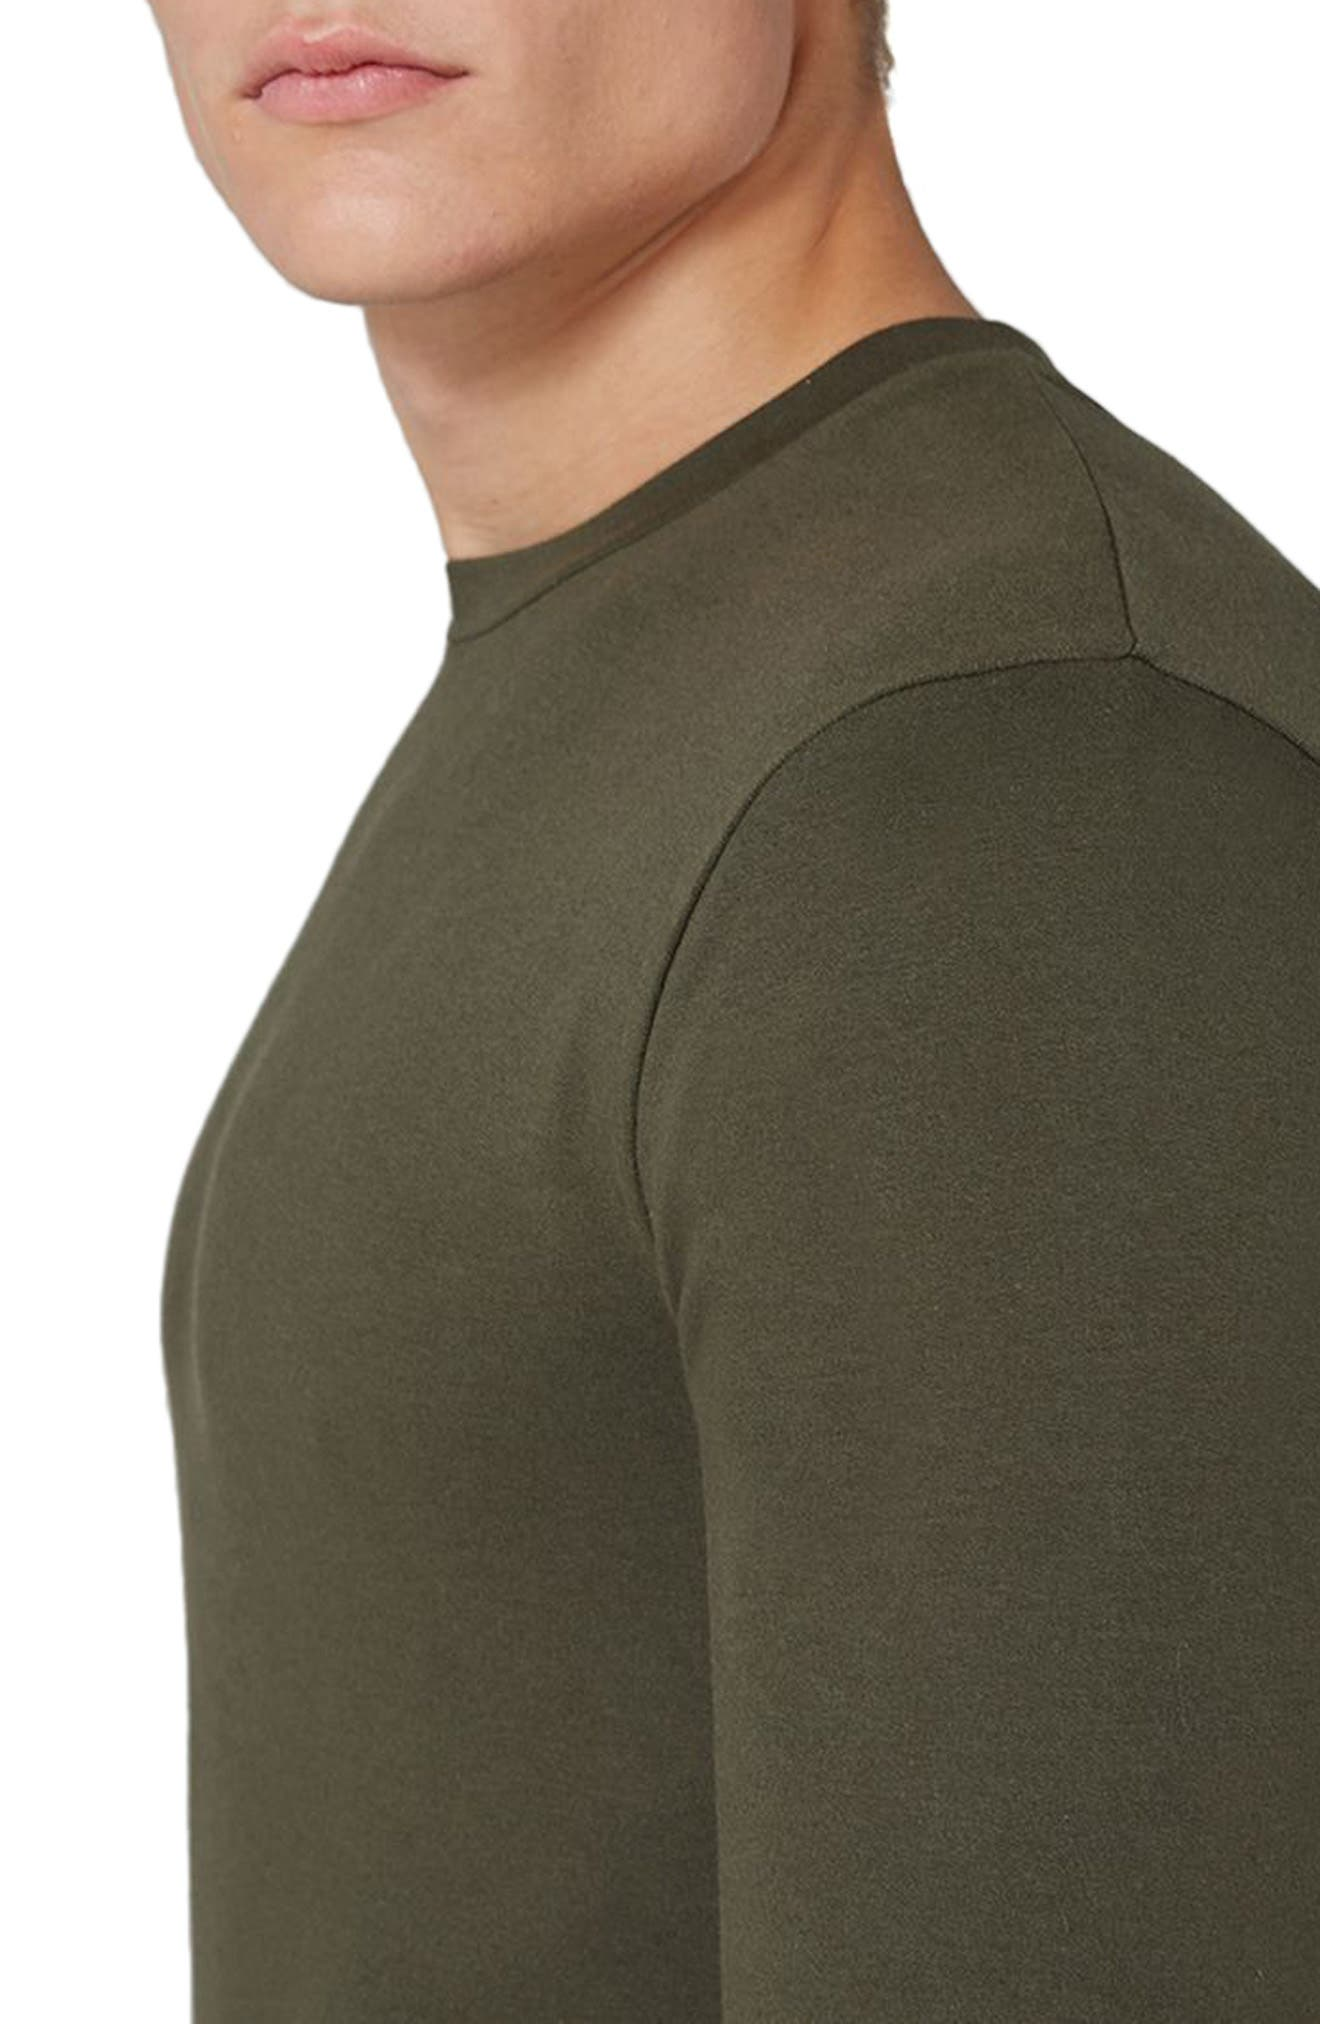 Ultra Muscle Fit Sweatshirt,                             Alternate thumbnail 3, color,                             Olive